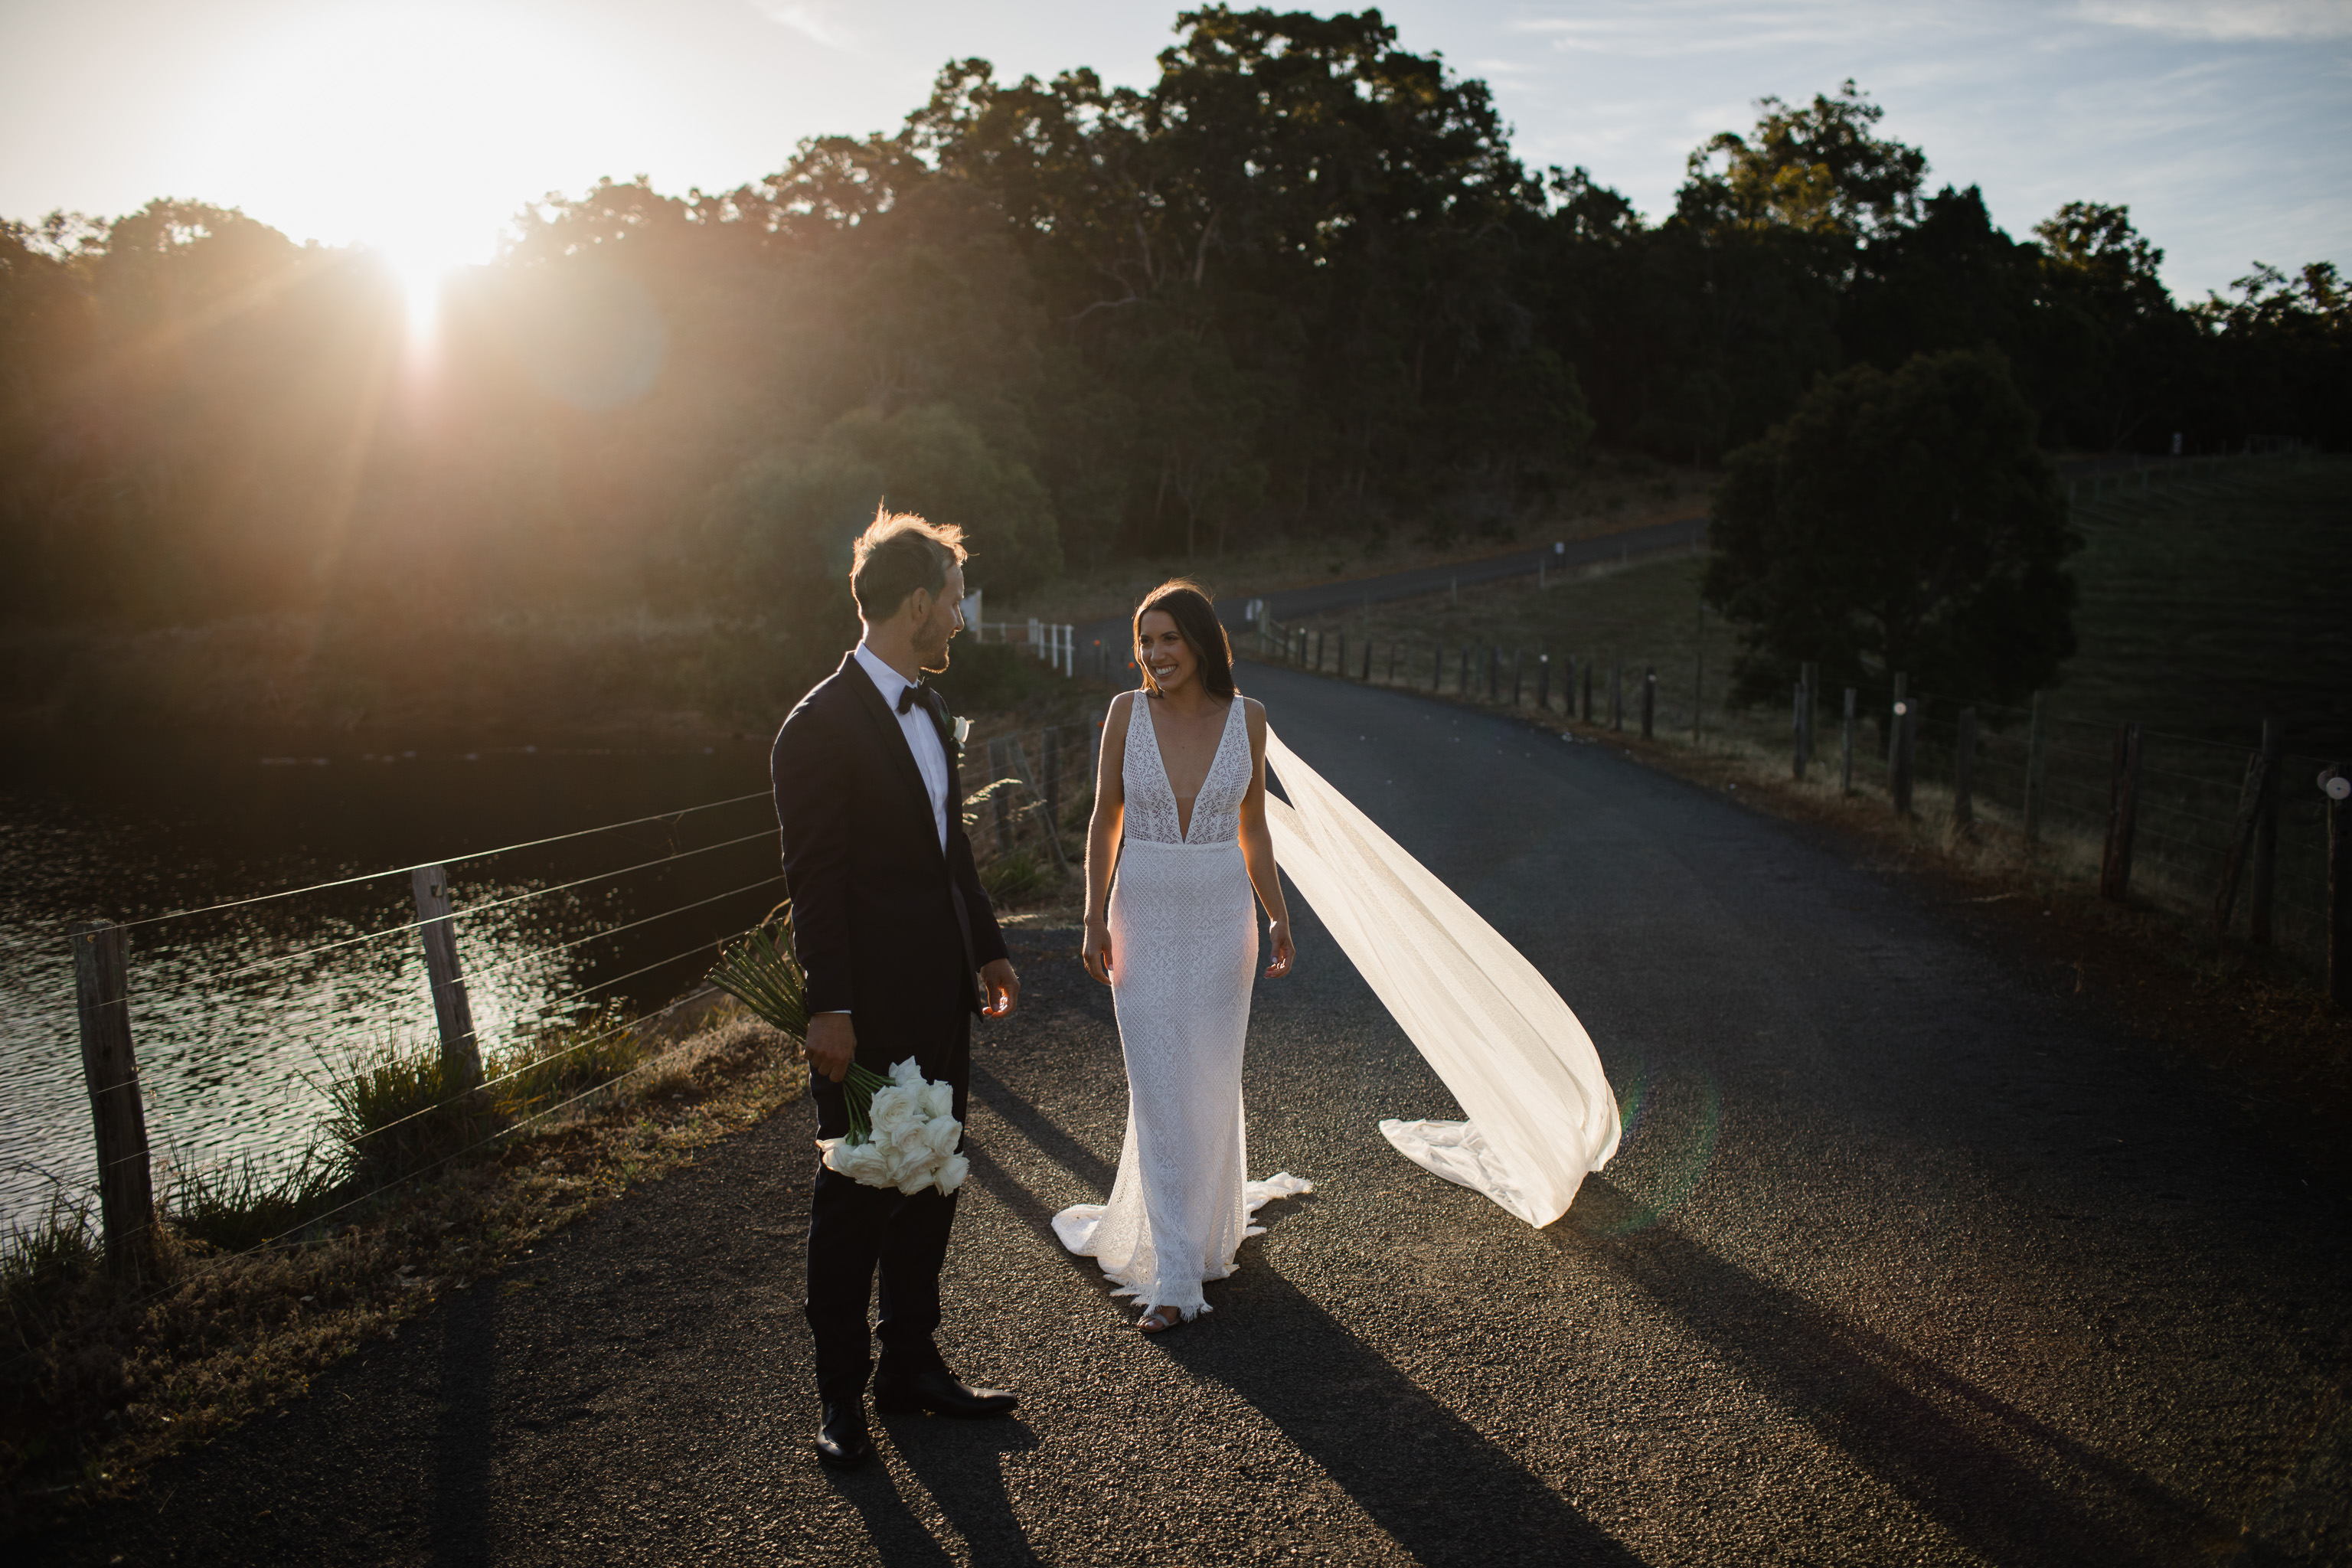 Bride and groom standing in small patch of backlit sunlight against a dark road at sunset at Meelup farmhouse near Eagle Bay